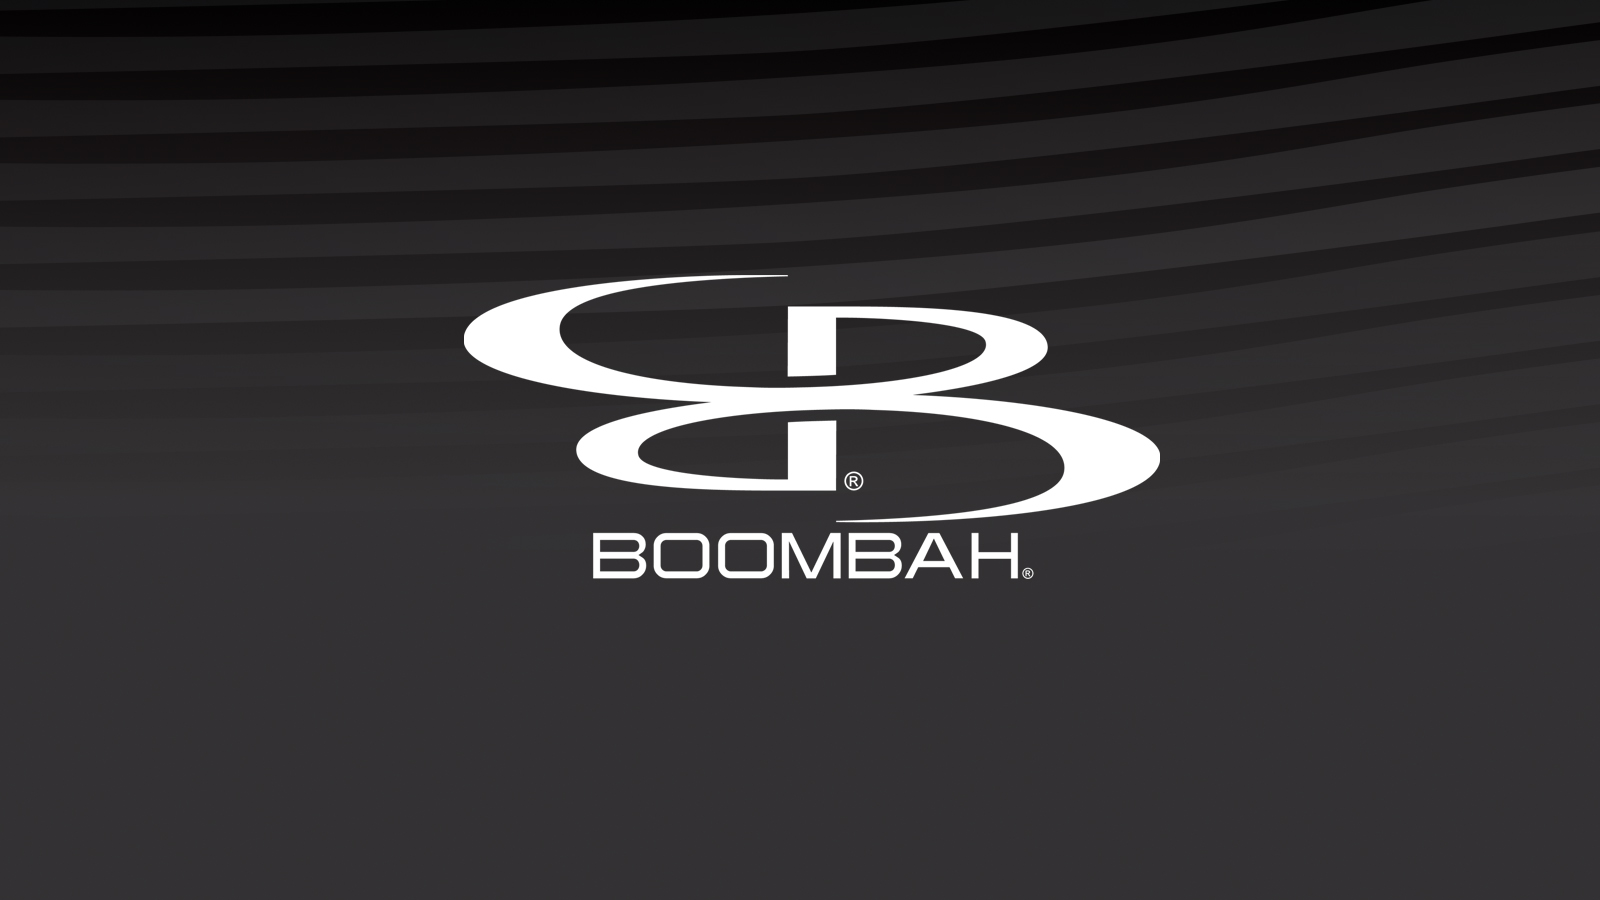 Boombah discount coupon code